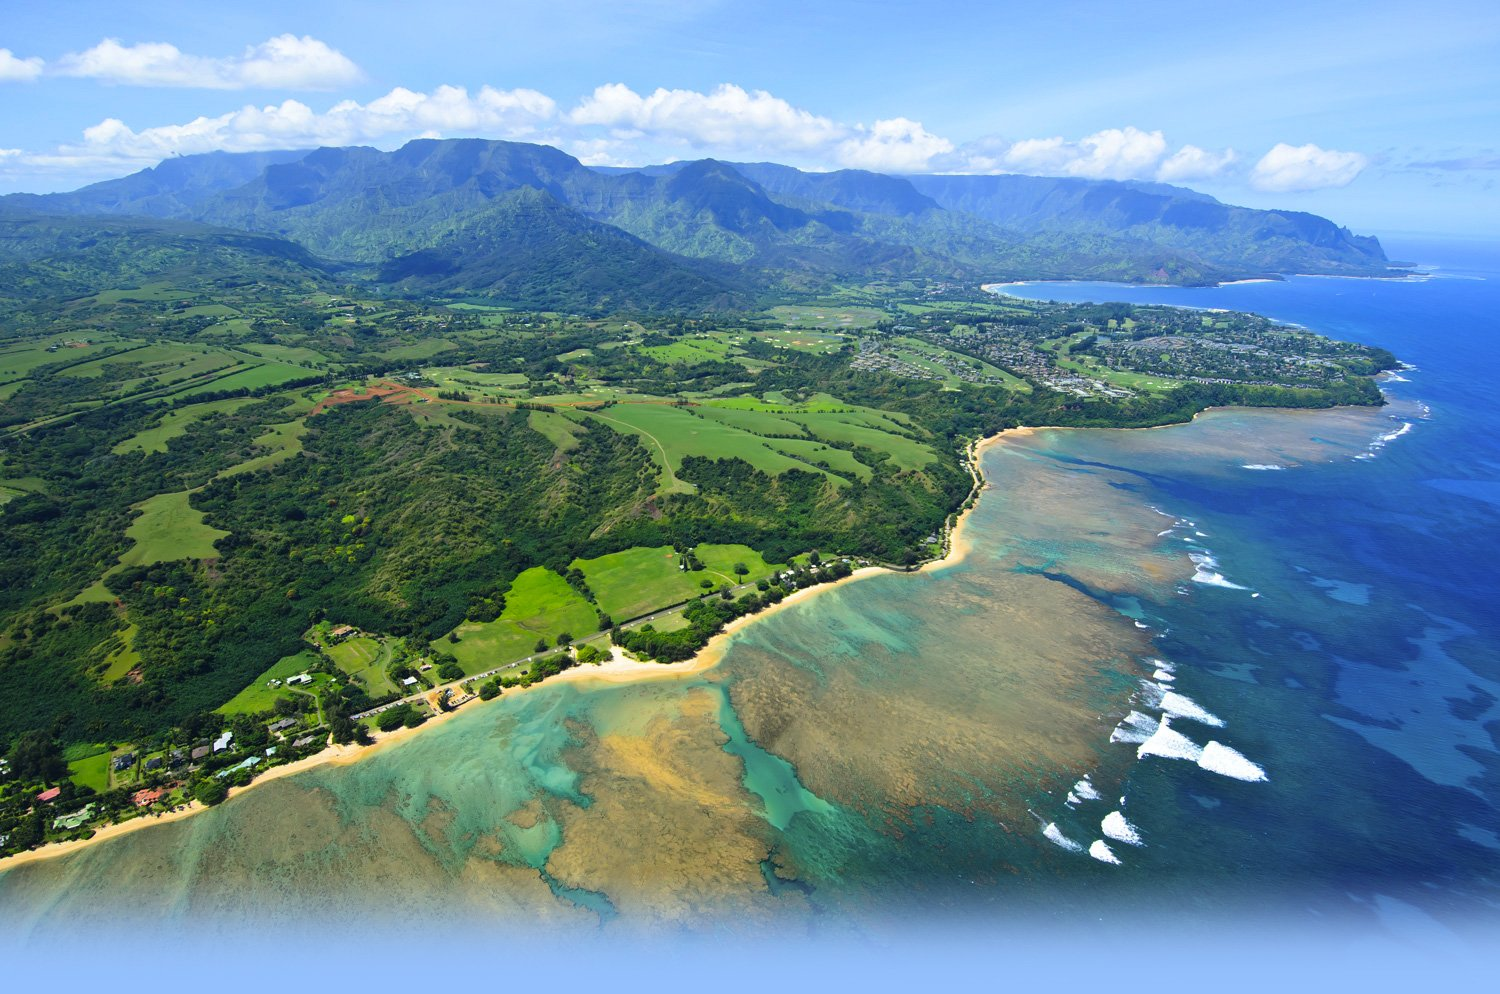 Book a trip to Hawaii, Princeville at Hanalei Resort, Kauai